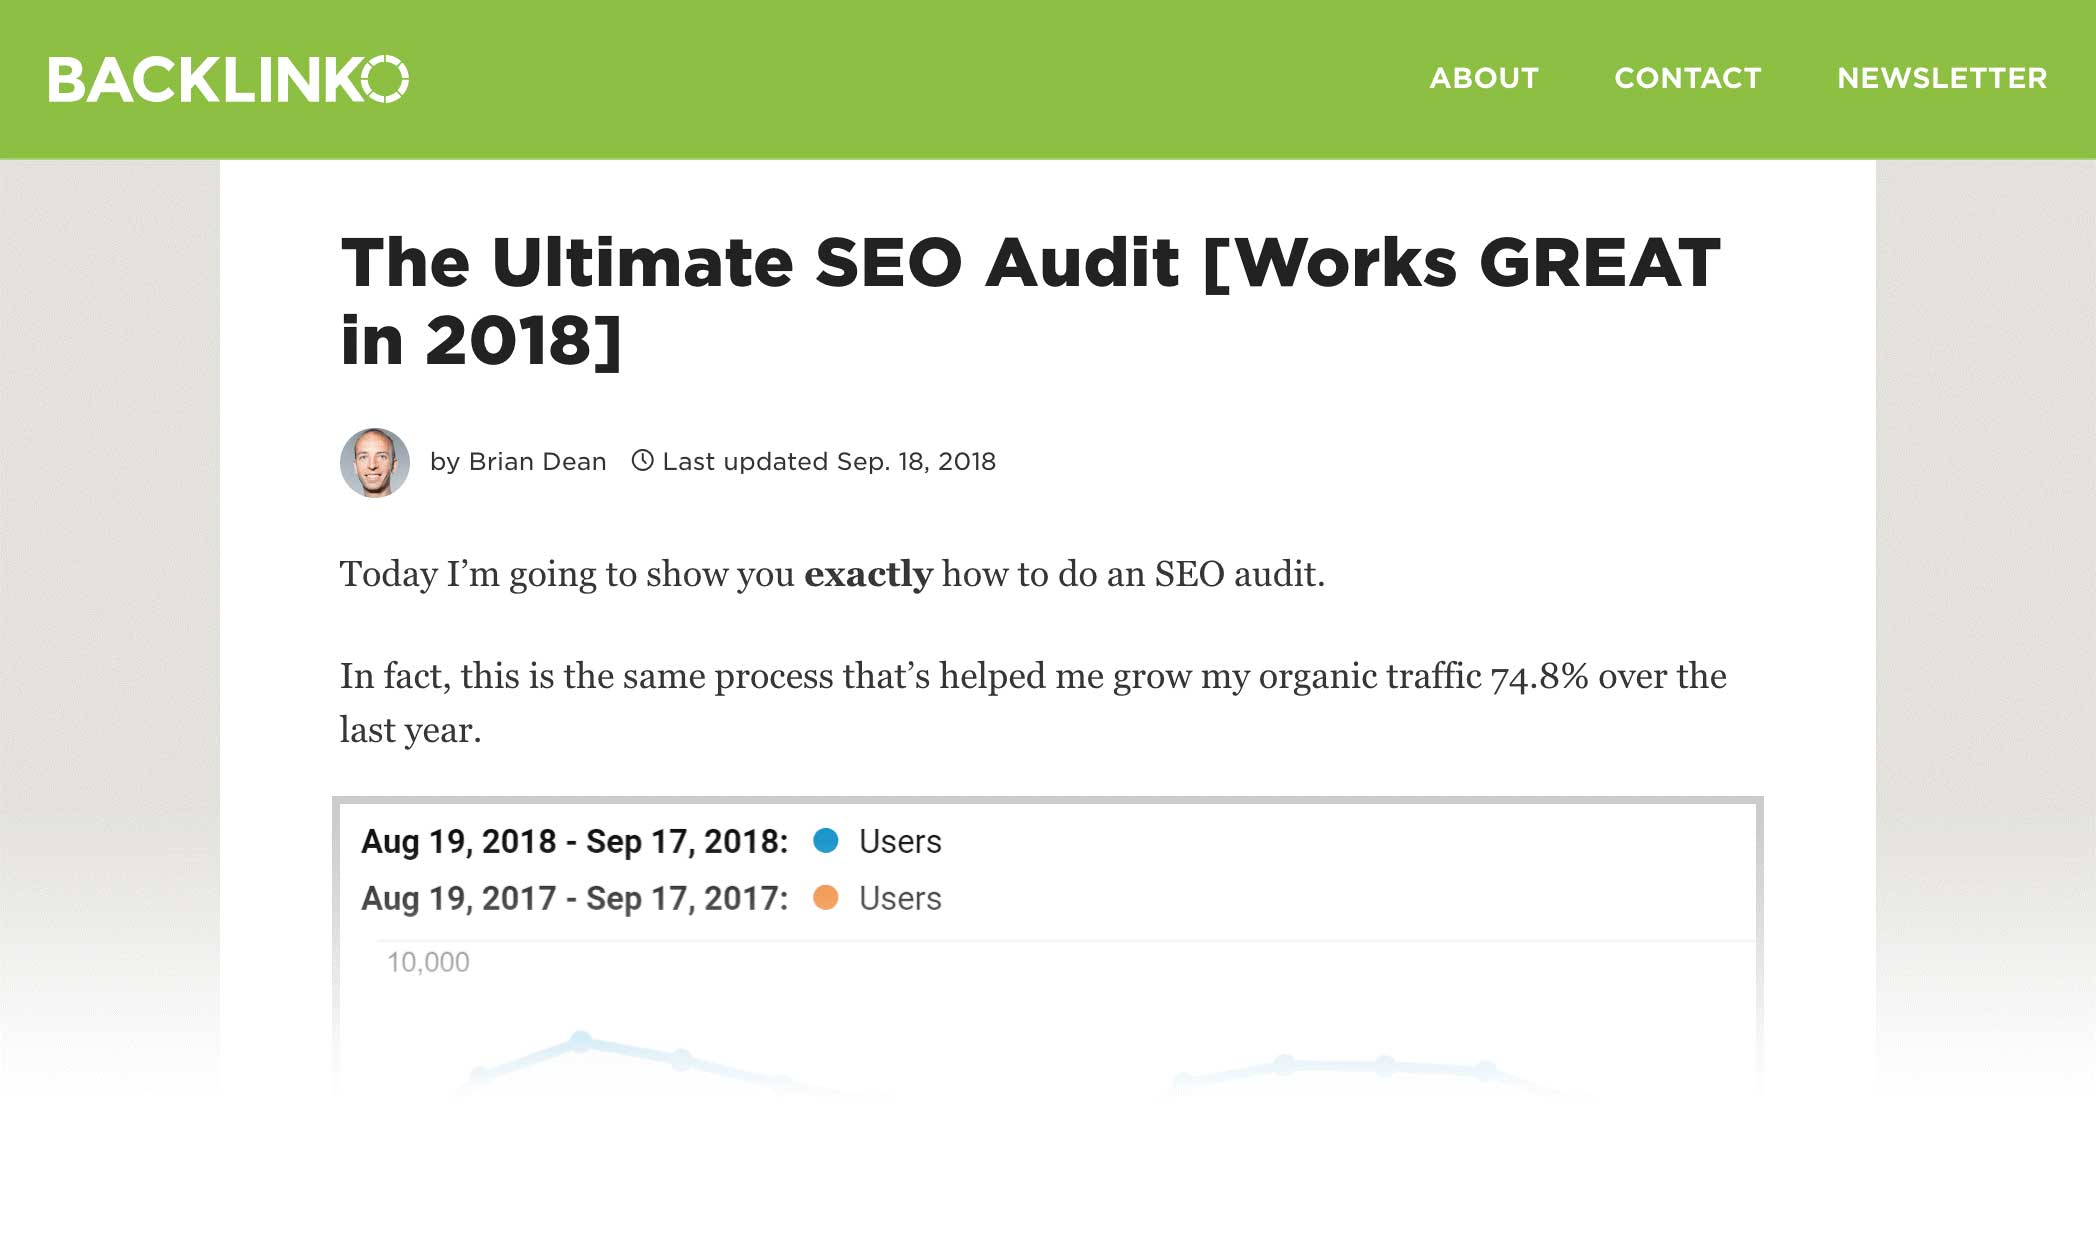 the ultimate seo audit update post